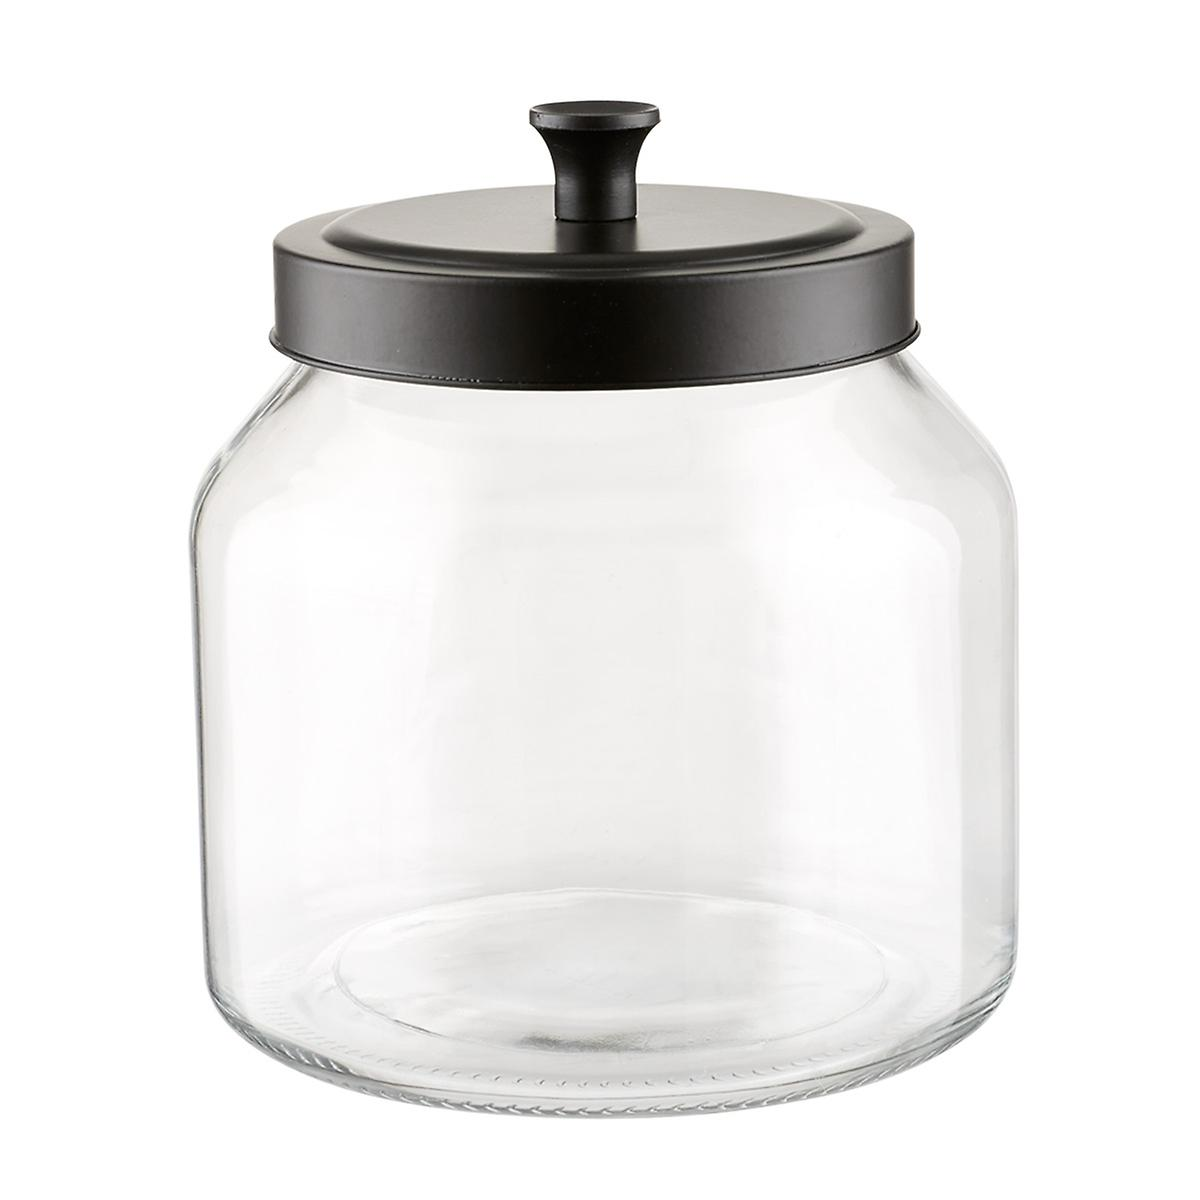 GLASS CANISTERS WITH MATTE BLACK LIDS